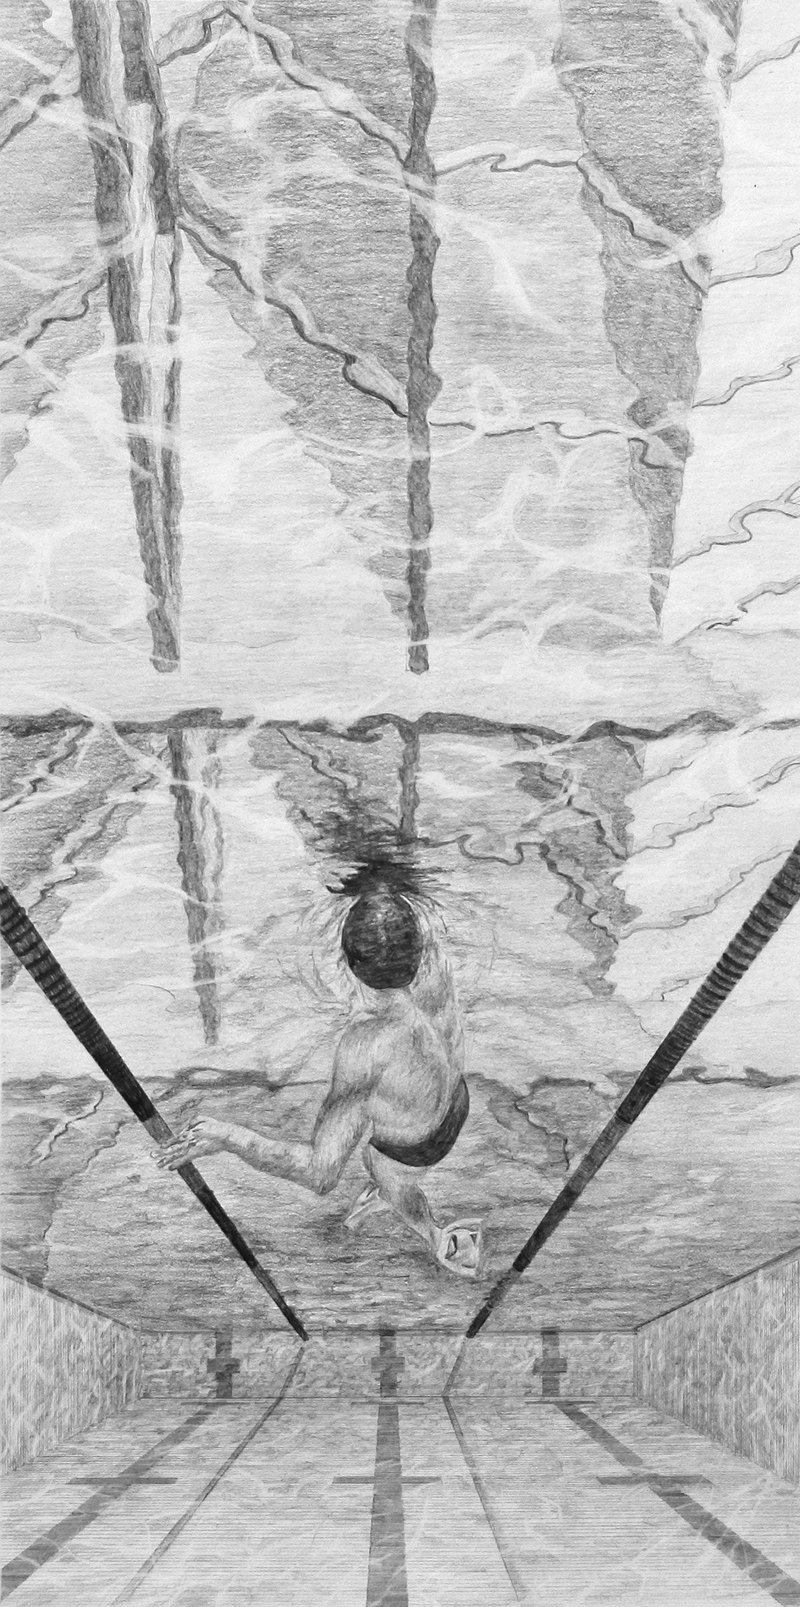 Under the Fifth Facade:  A Swimmer's Perspective. Hand drawn pencil study,  200mm × 400mm presented on A2.